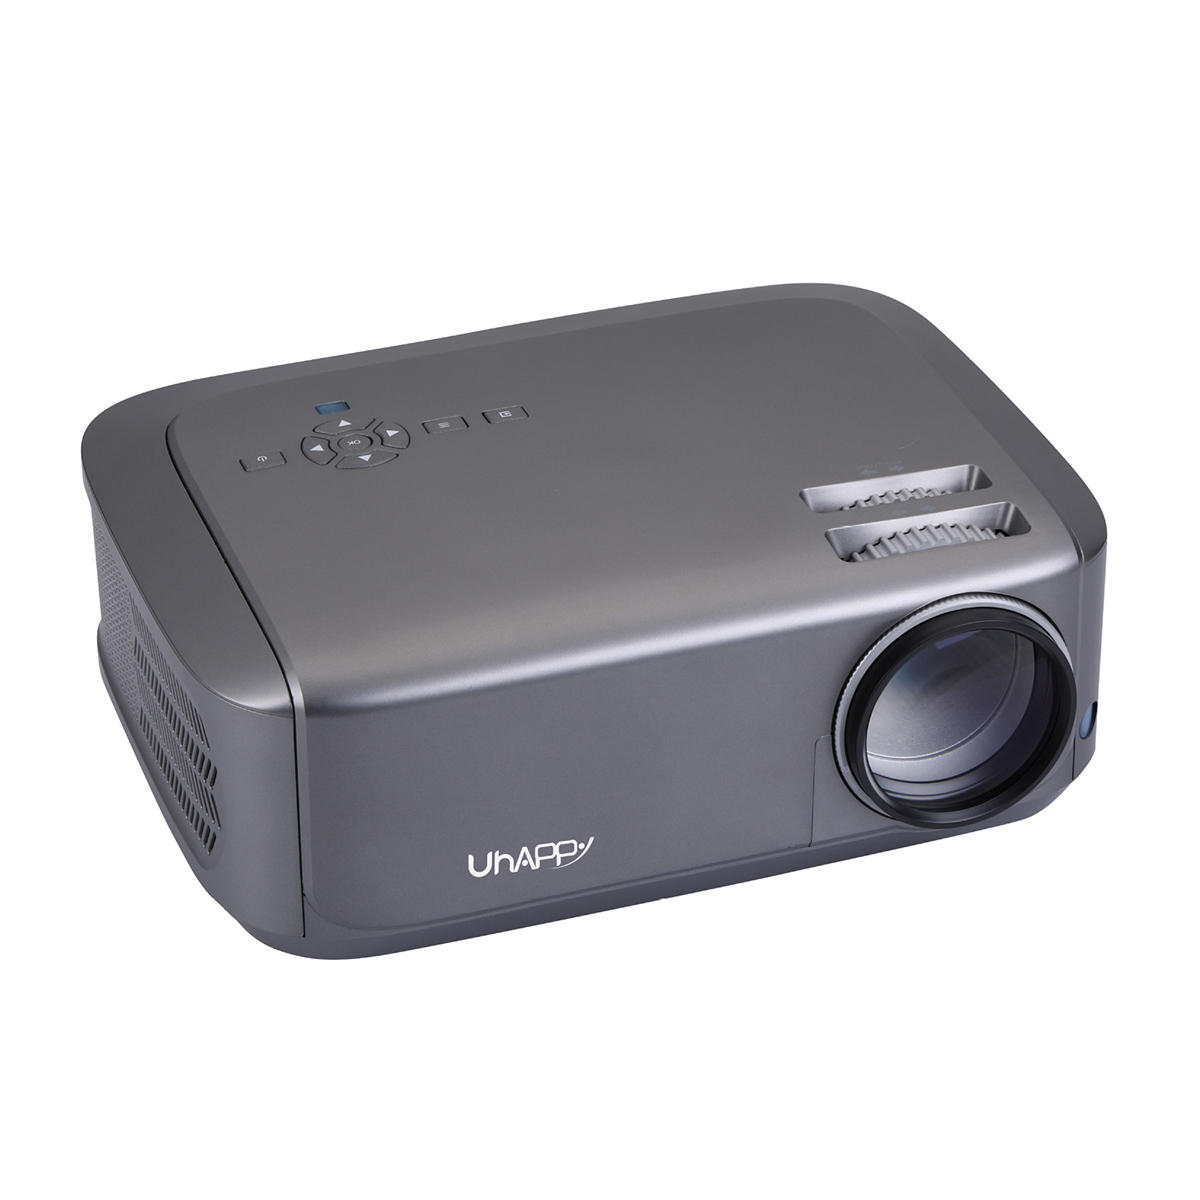 images/new-electronics/A1531355PB/uhappy-u68-mini-lcd-projector-1280-768dpi-hd-1080p-3500-lumens-led-projector-home-mini-theater-hdmi-usb-av-vga-plusbuyer.jpg